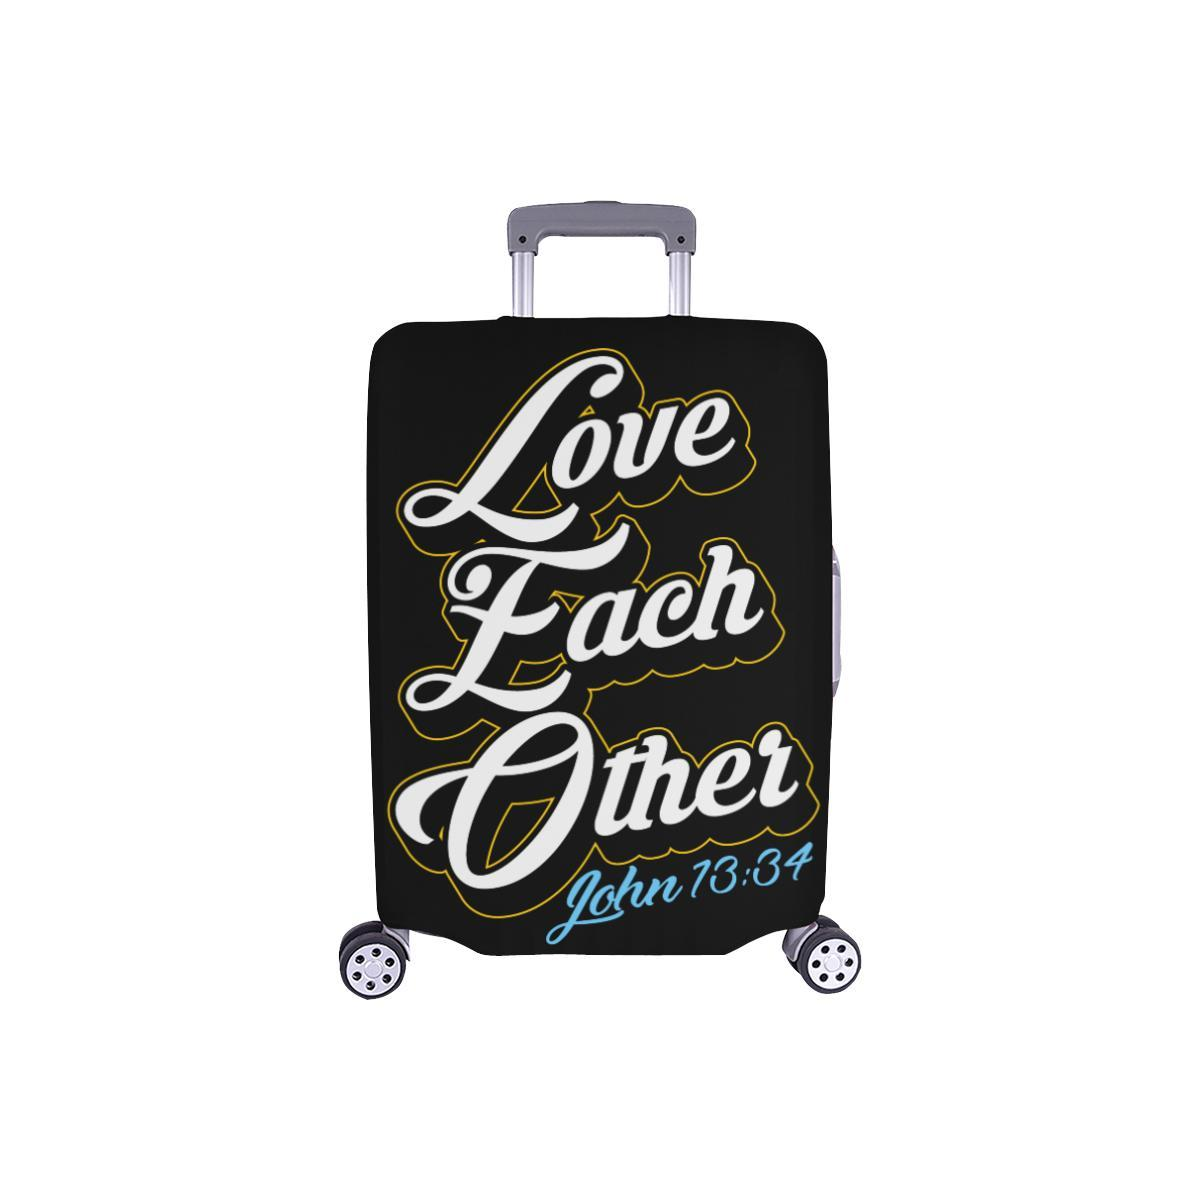 Love Each Other John 13:34 Christian Travel Luggage Cover Suitcase Protector-S-Black-JoyHip.Com